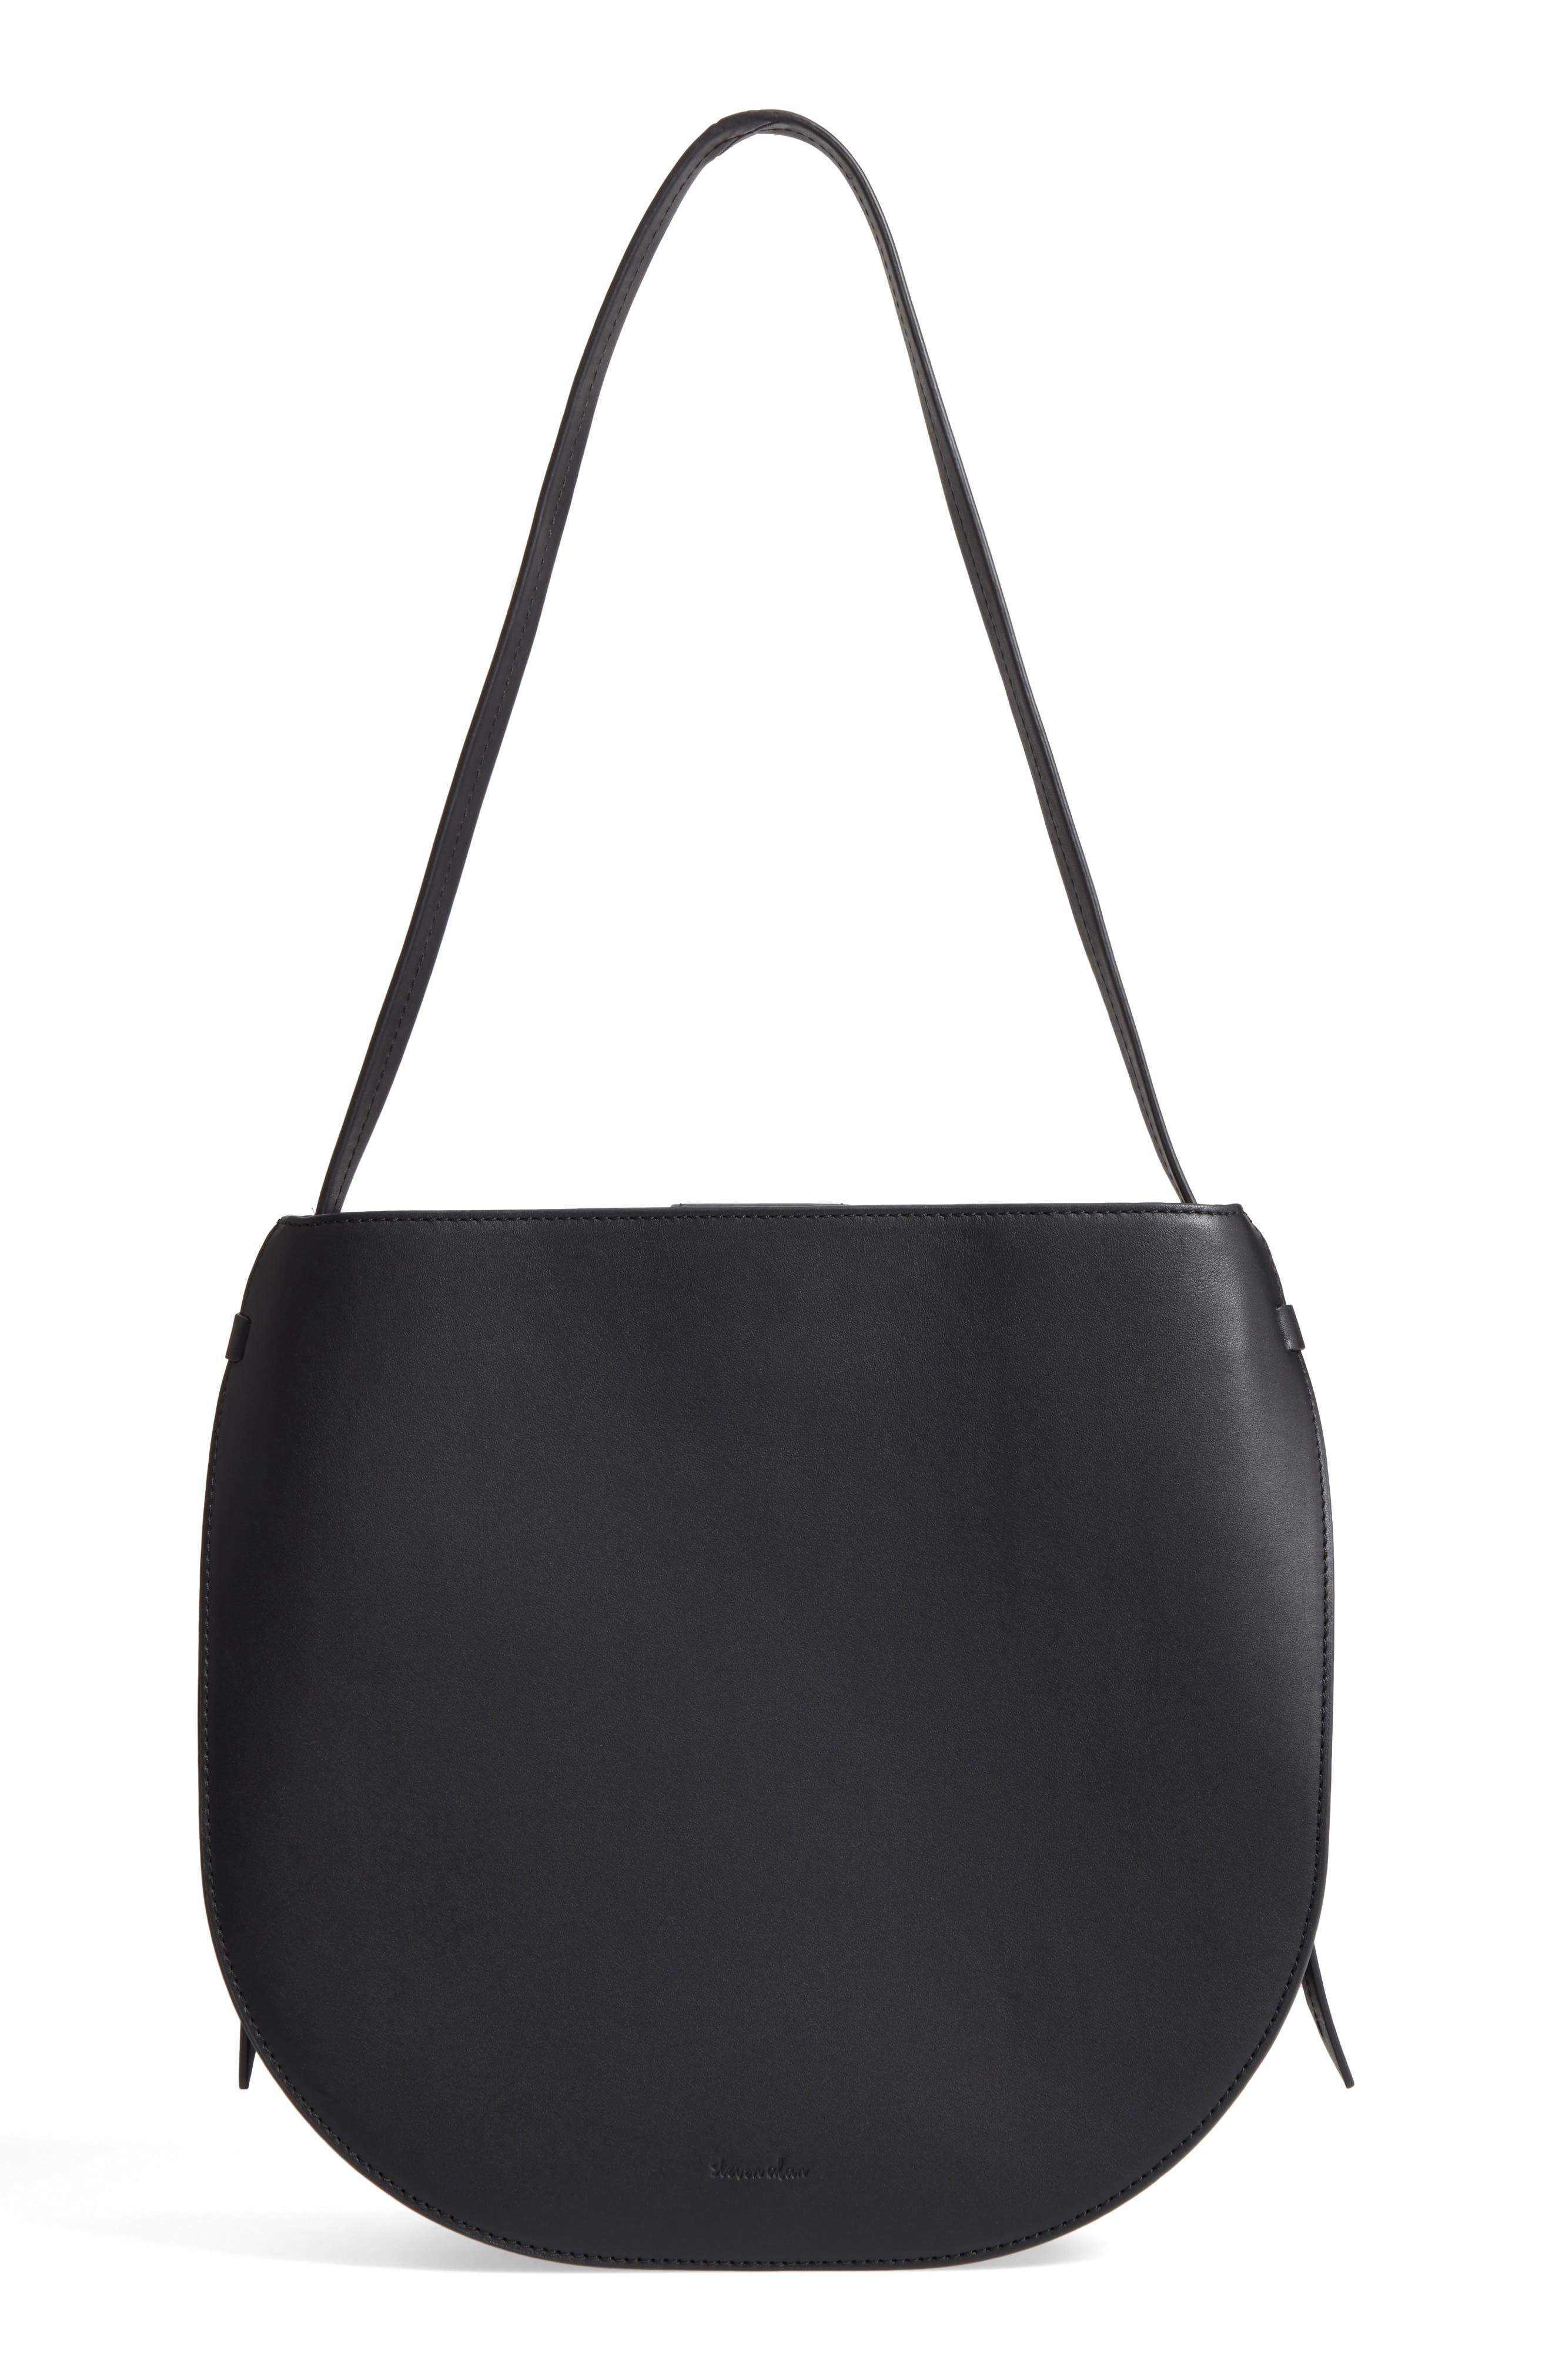 Helena Half Moon Leather Shoulder Bag,                             Alternate thumbnail 2, color,                             Black